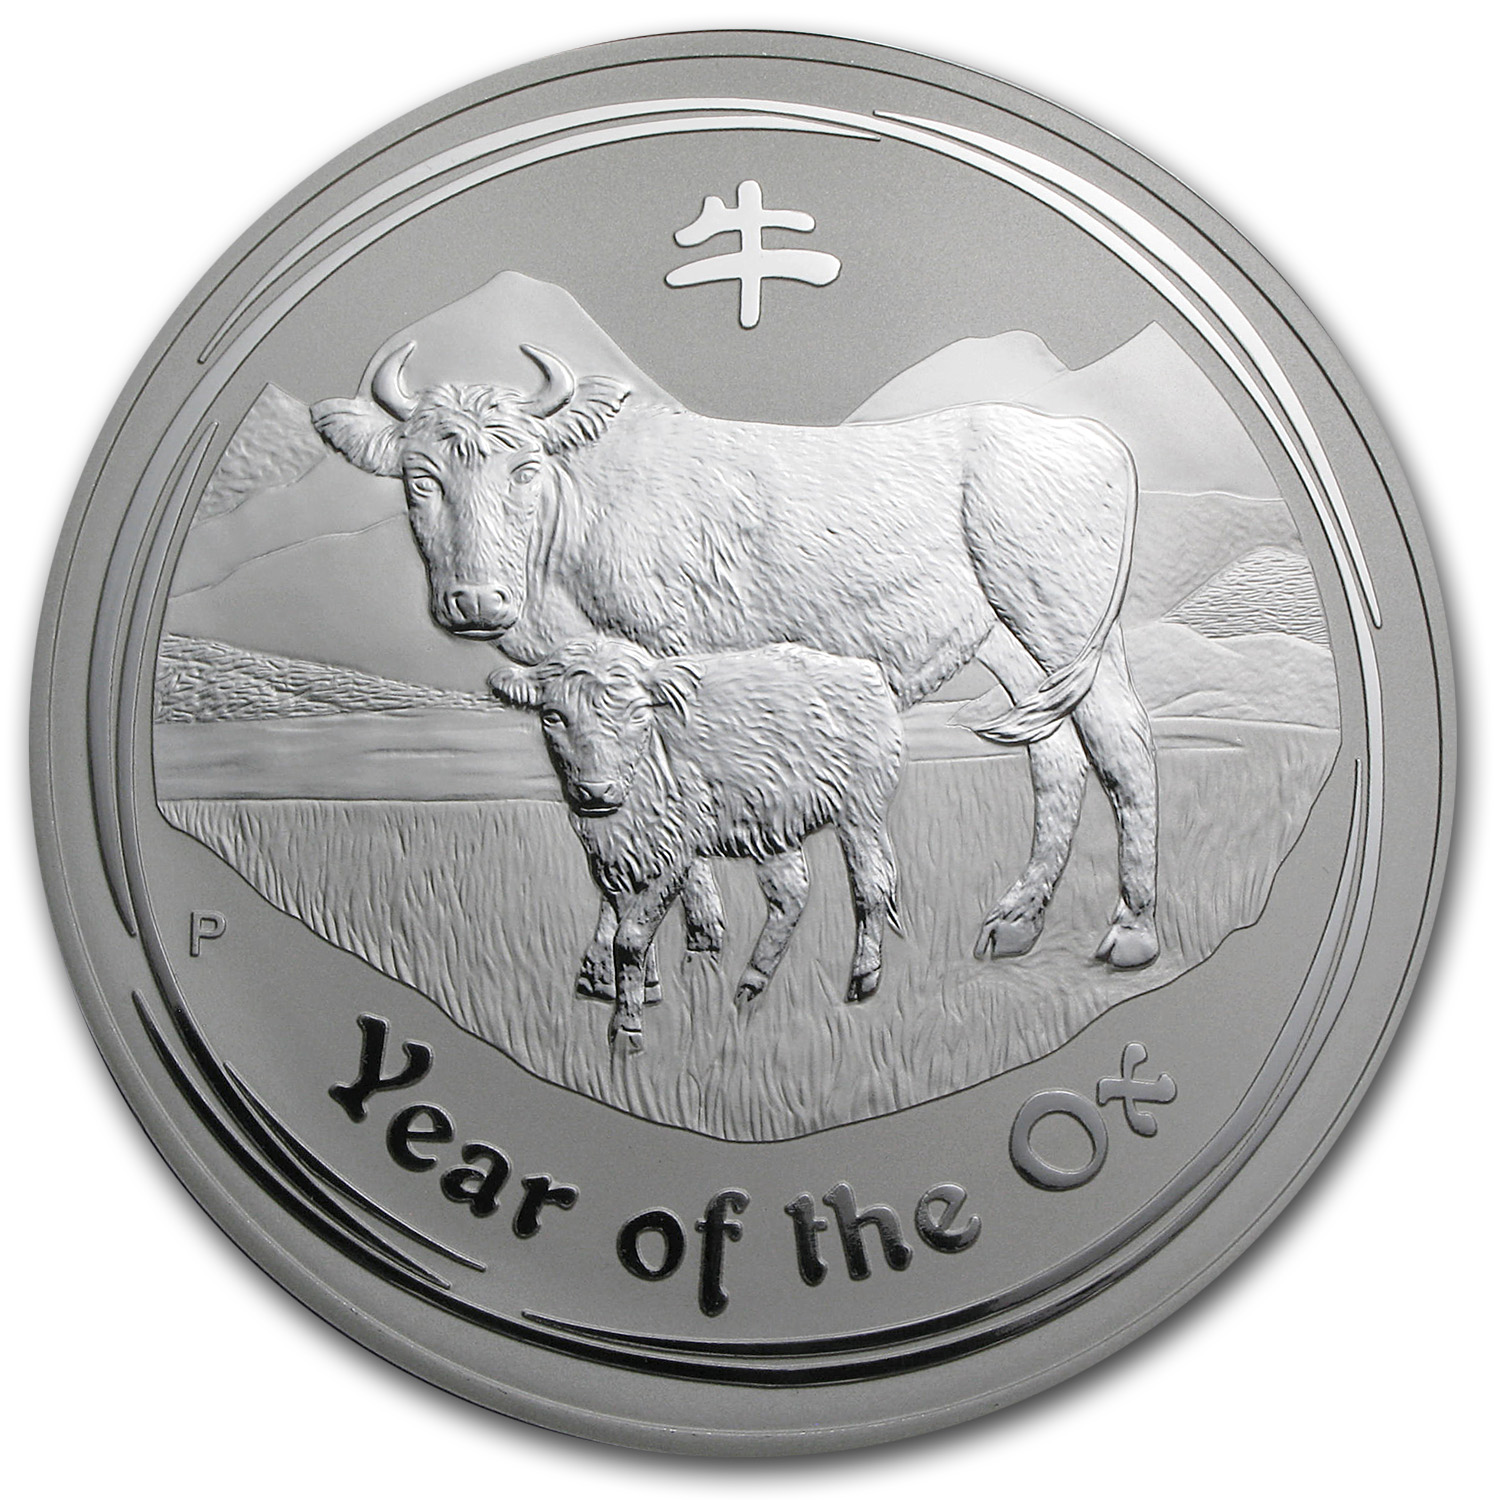 2009 1 Kilo Silver Australian Year of the Ox BU (Series II)